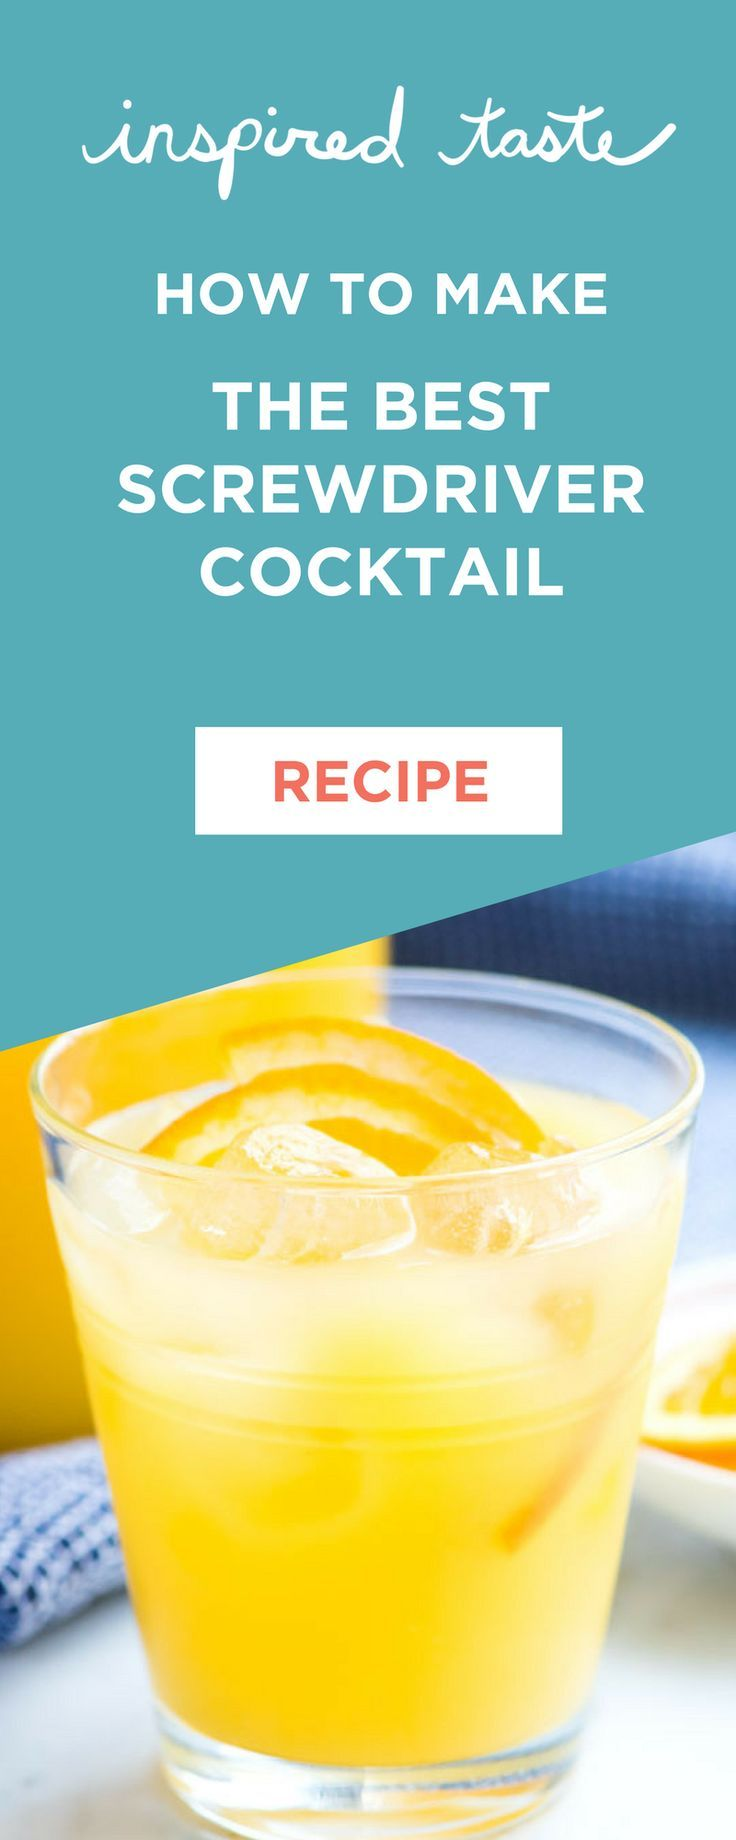 How To Make The Best Screwdriver Cocktail Recipe Alcohol Drink Recipes Screwdriver Drink Screwdriver Drink Recipe